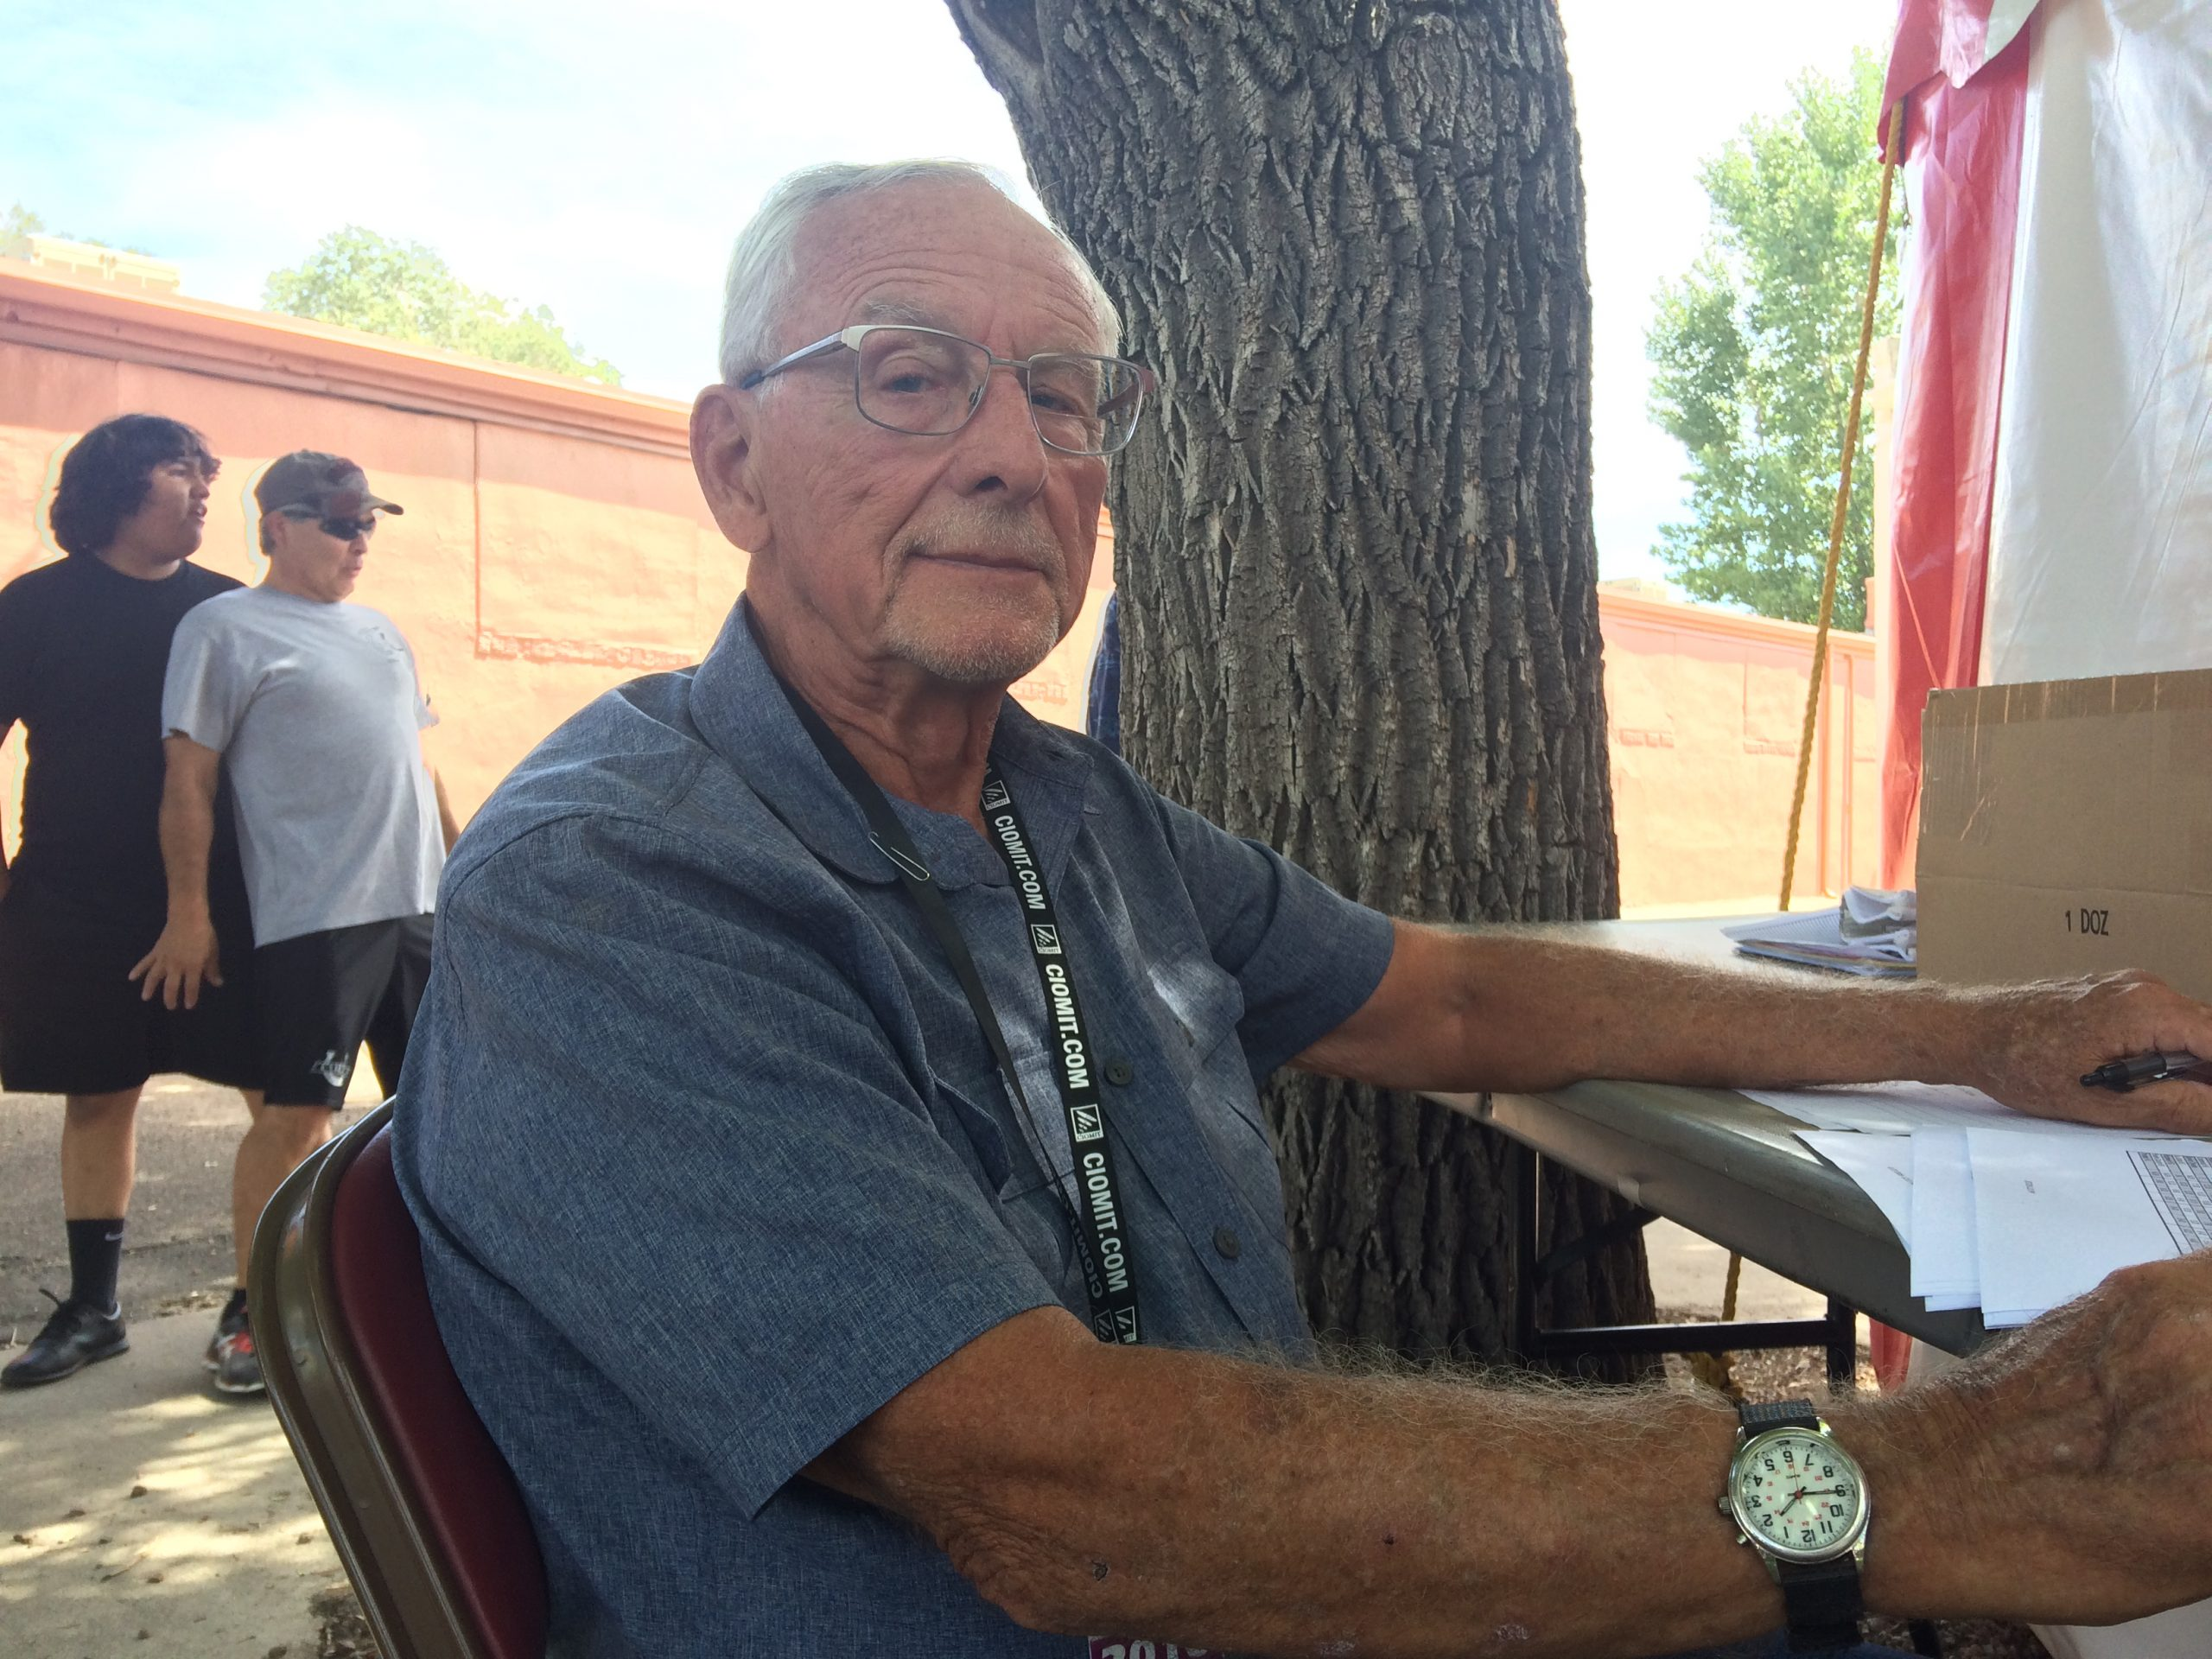 Bill Thomas has organized the band competition for 15 years.